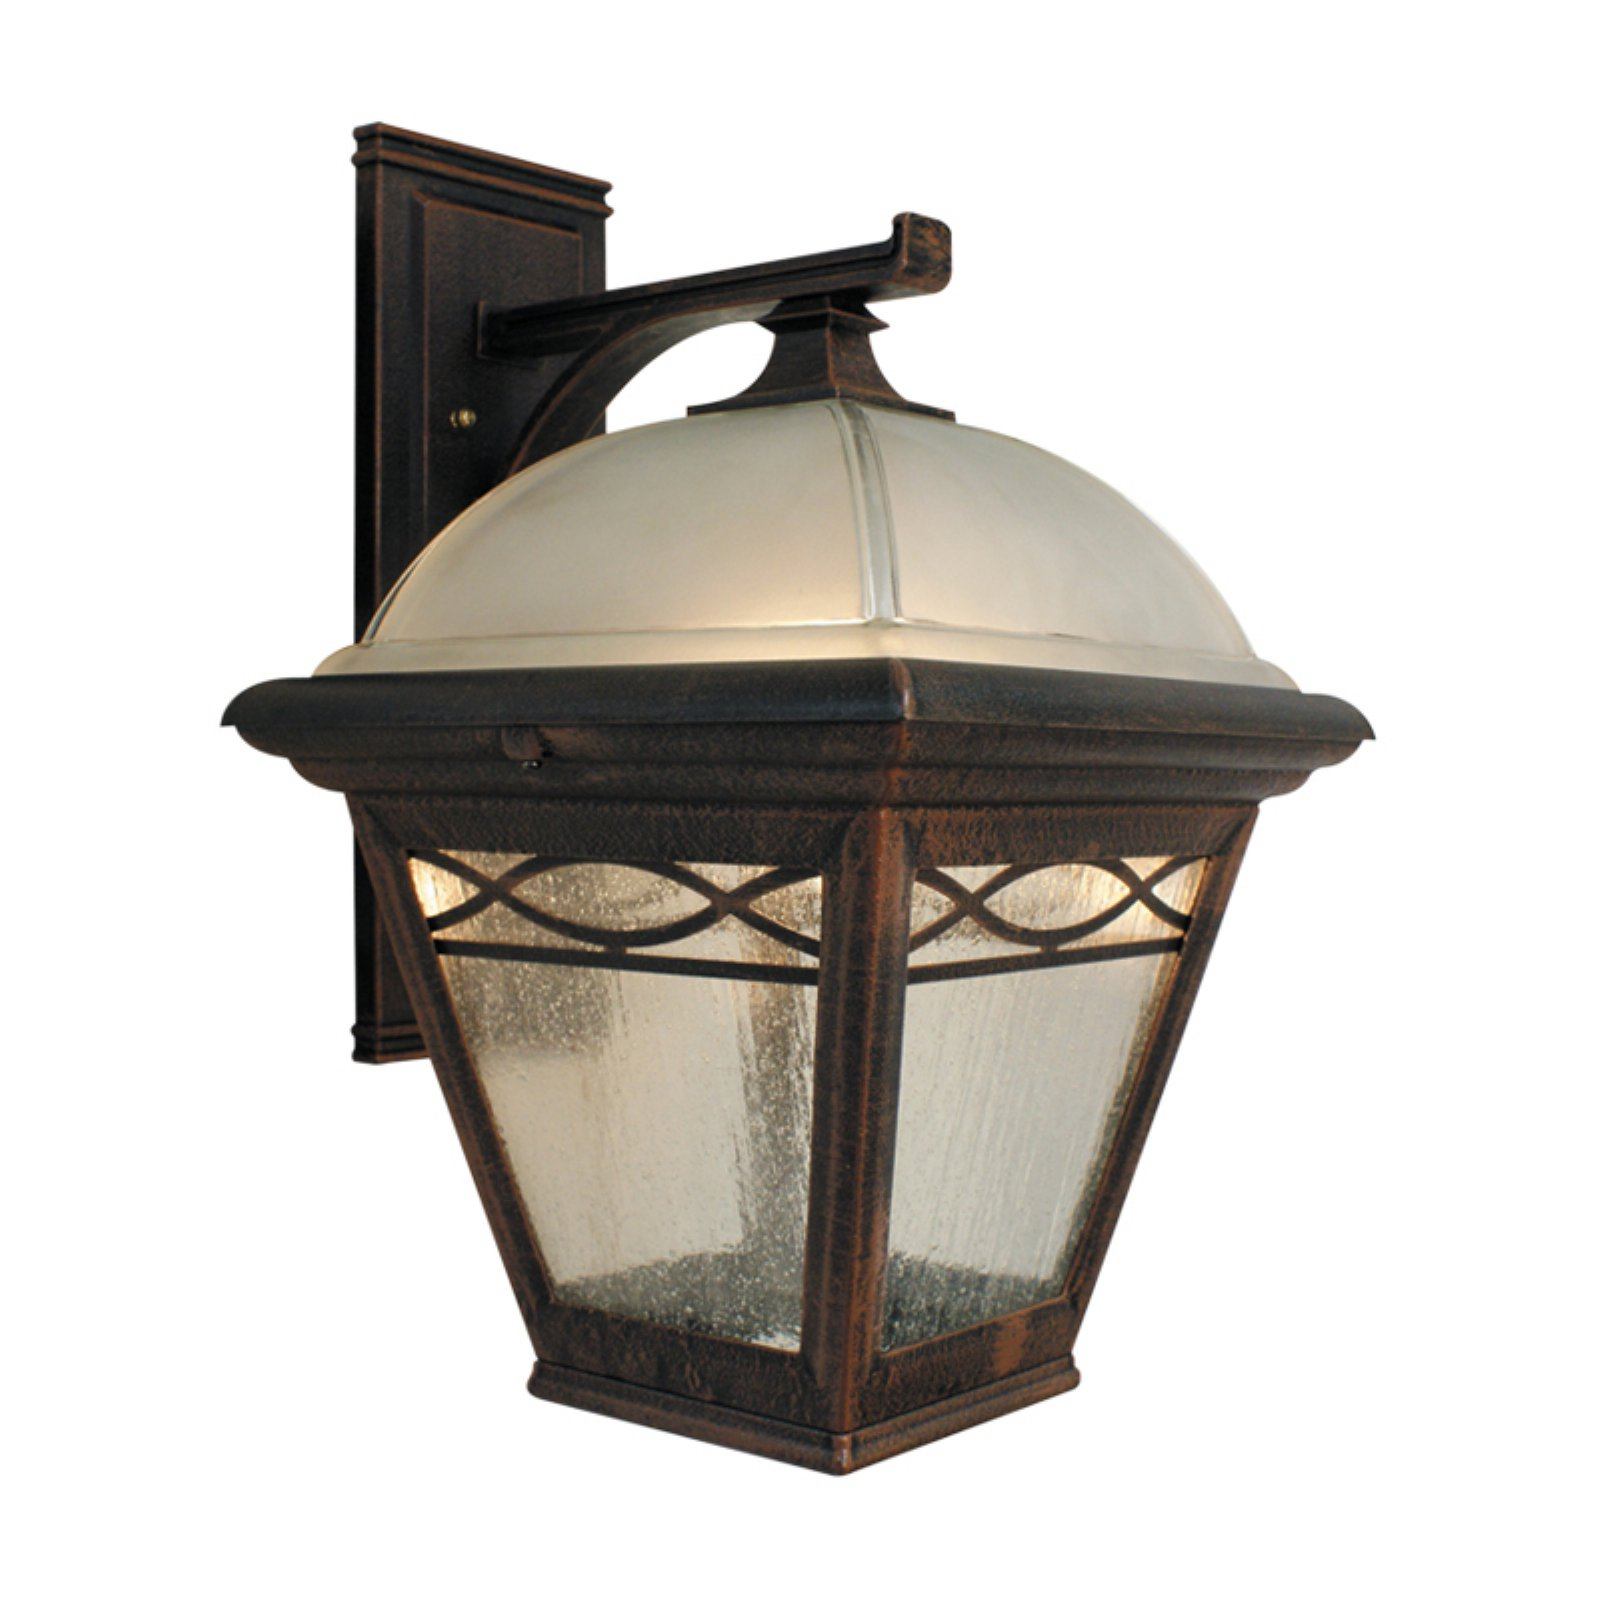 Special Lite Products Brentwood F-2832 Outdoor Top Mount Open Bottom Wall Light